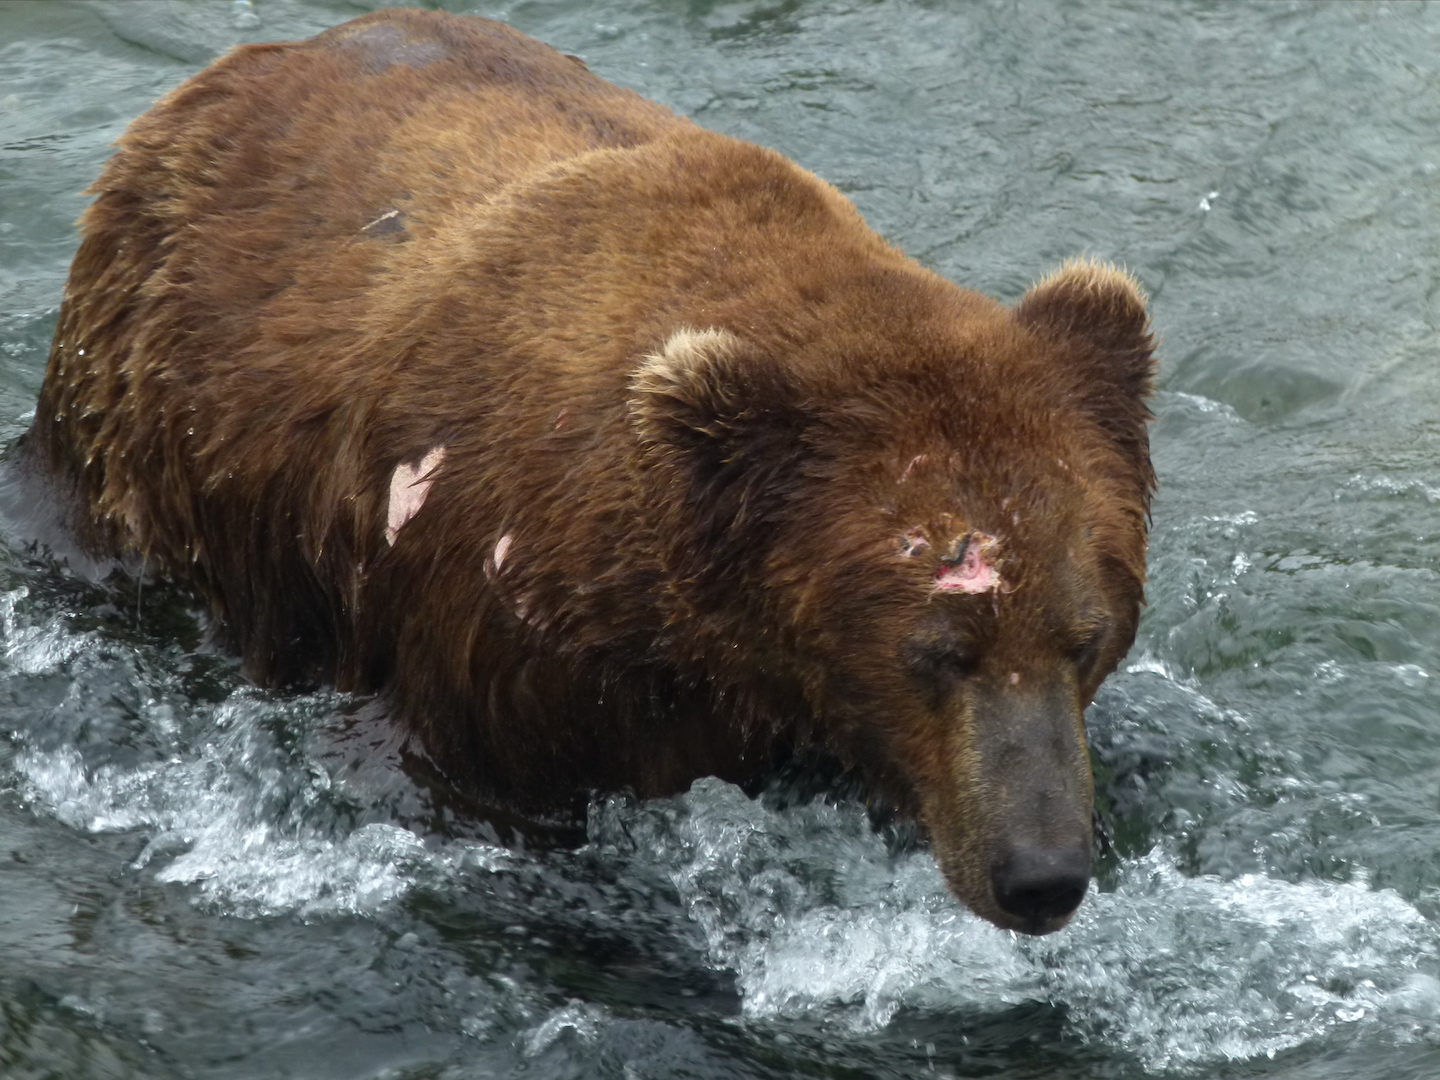 brown bear walking through belly deep water. Bear has wounds on forehead and right shoulder.